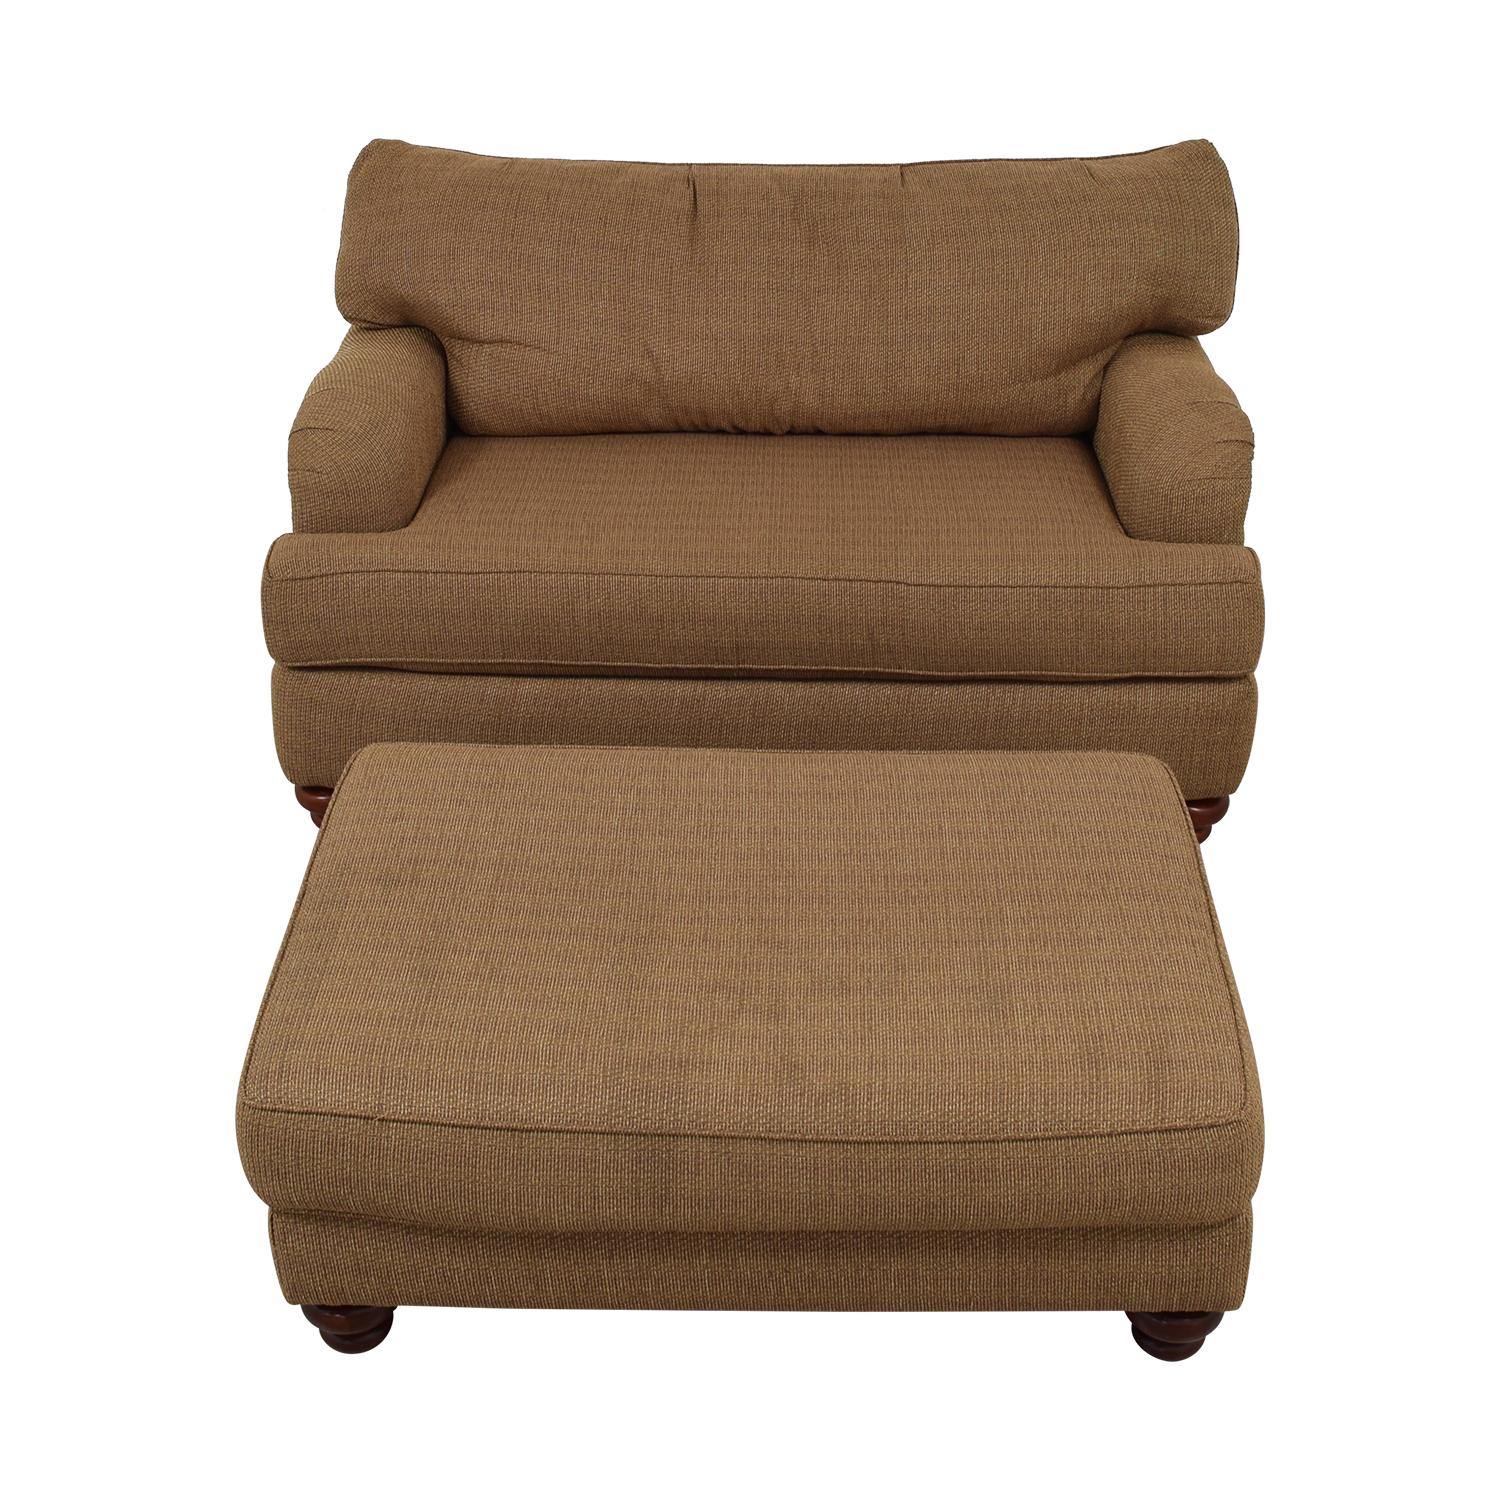 shop Klaussner Home Furnishings Brown Single Cushion Couch and Ottoman Klaussner Home Furnishings Accent Chairs